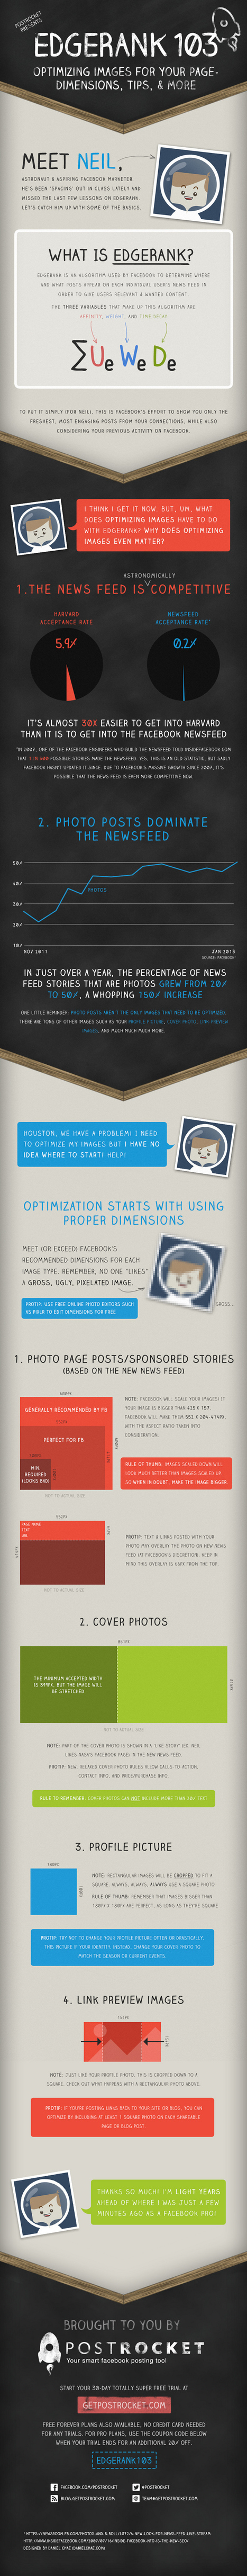 Infographic: Best Practices for Optimizing Facebook Photos | Social and digital network | Scoop.it